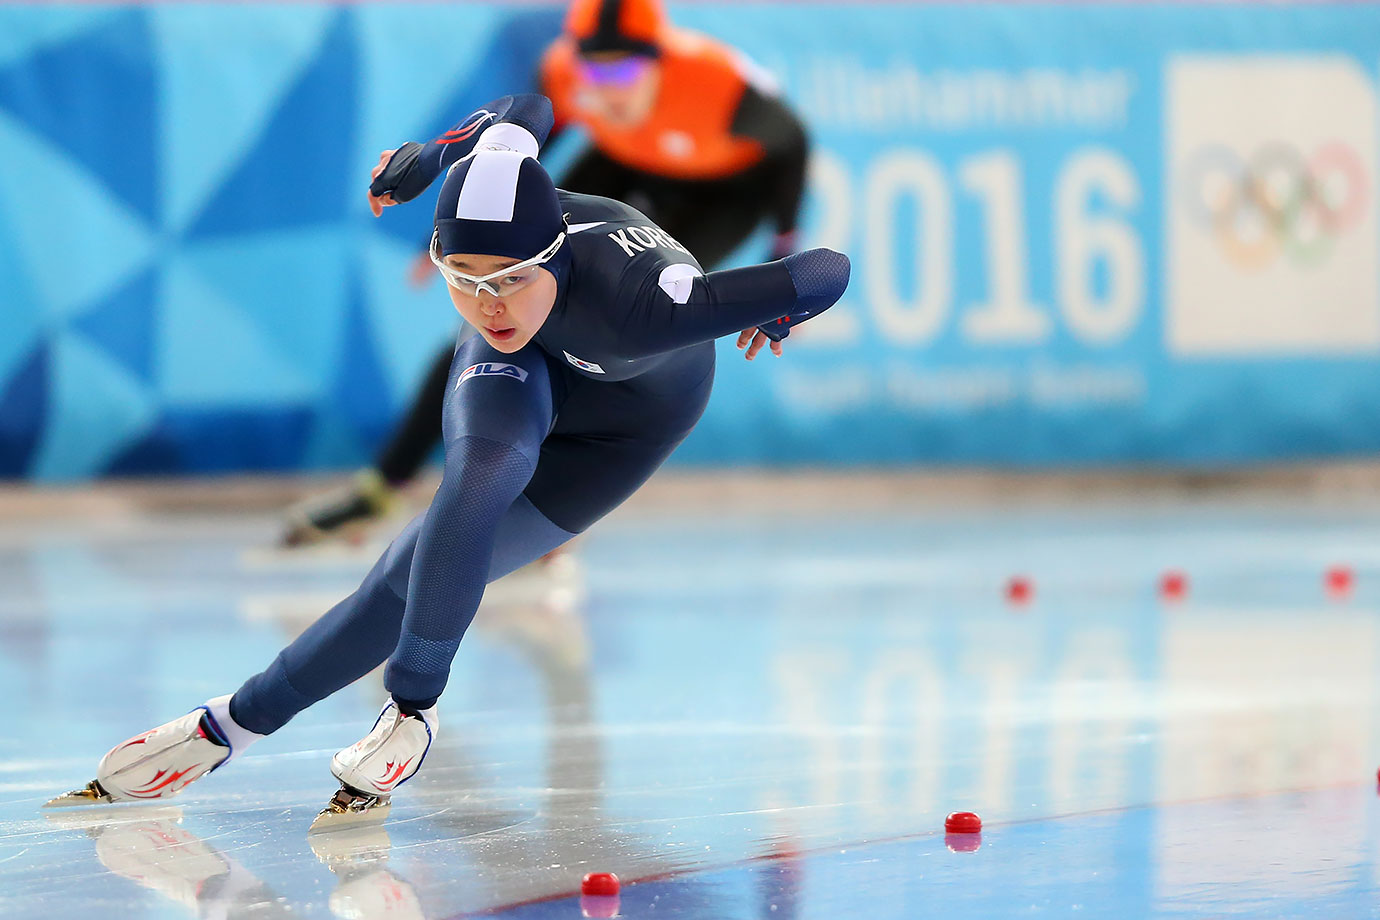 Min Sun Kim (KOR) competes in the Ladies' 500m Speed Skating race on Feb. 13, 2016 during the Winter Youth Olympic Games in Lillehammer, Norway.